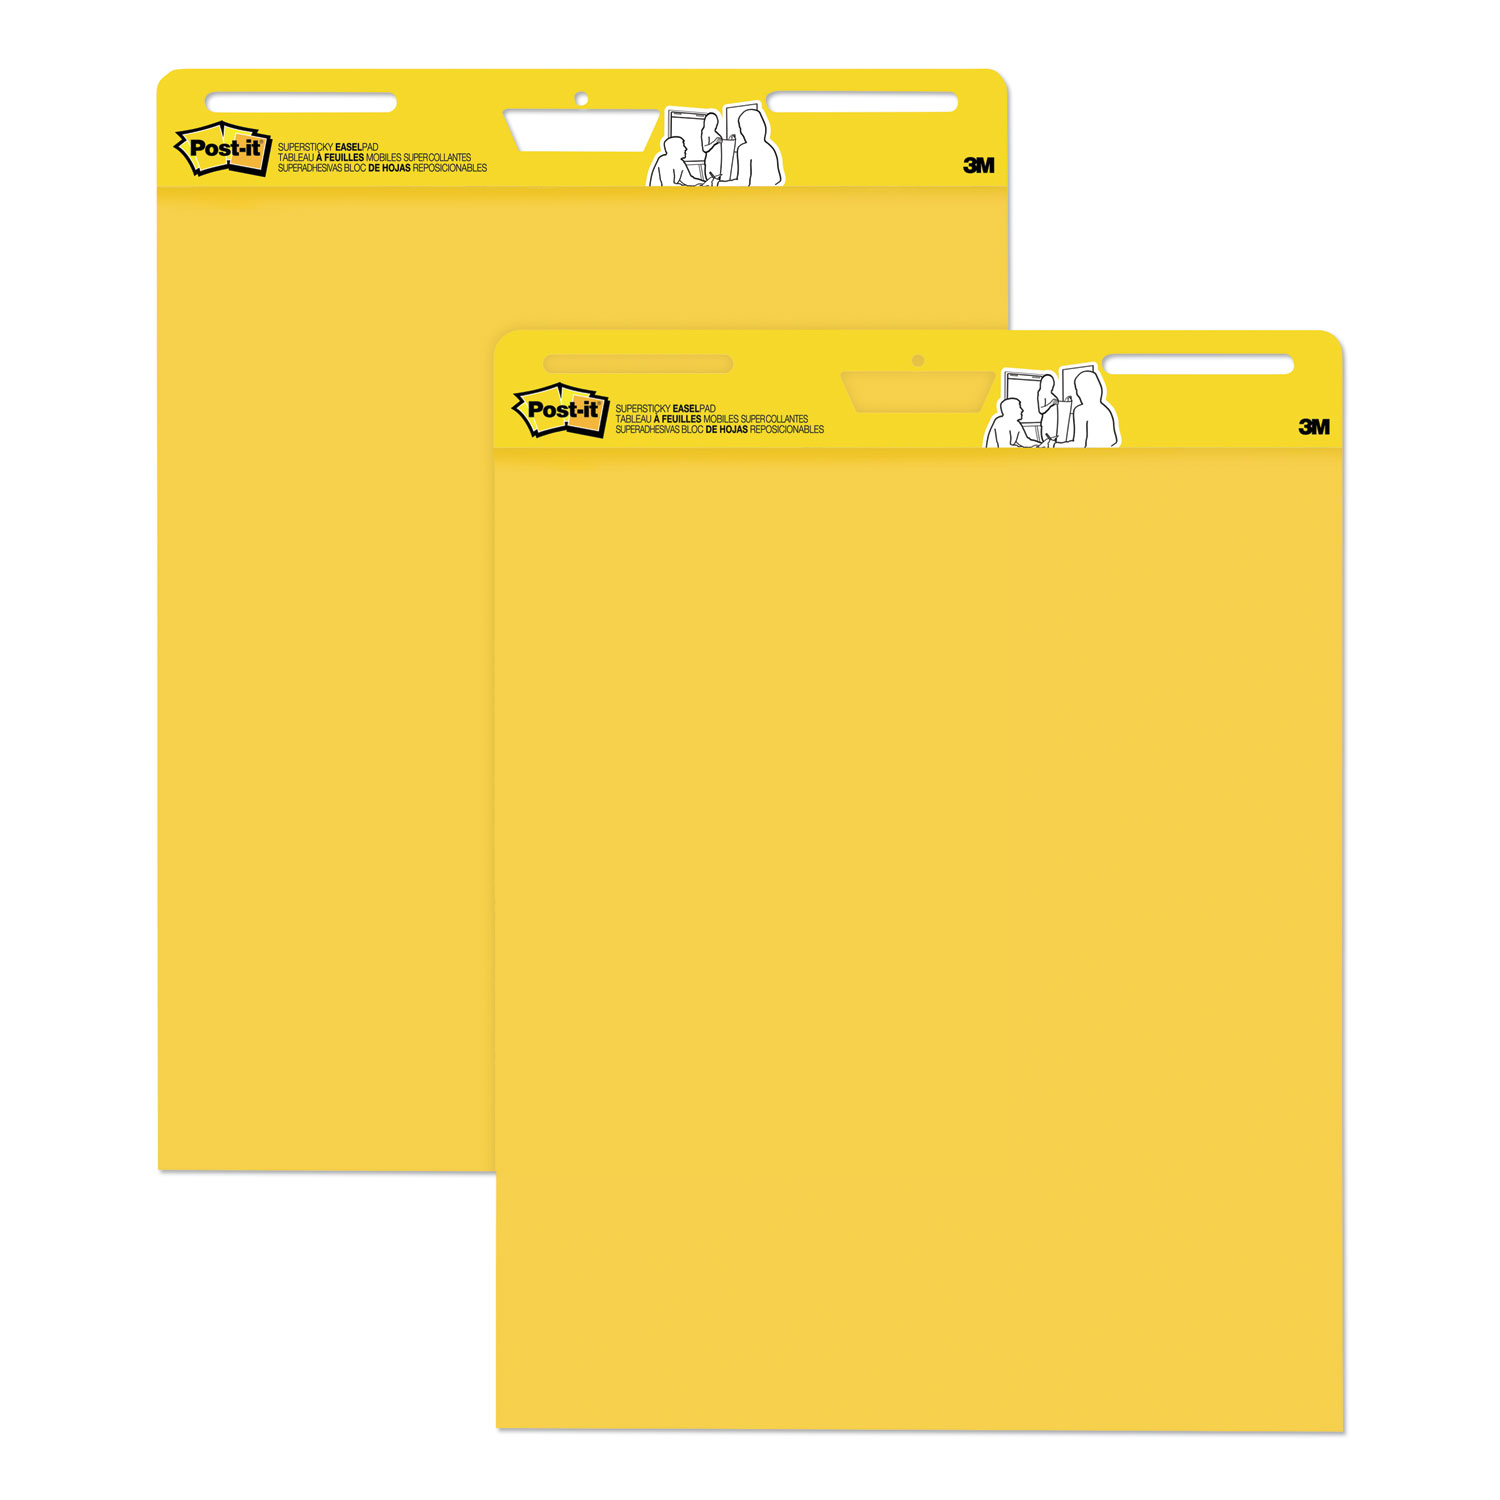 Self Stick Easel Pads, 25 x 30, Yellow, 30 Sheets, 2 Pads/Pack